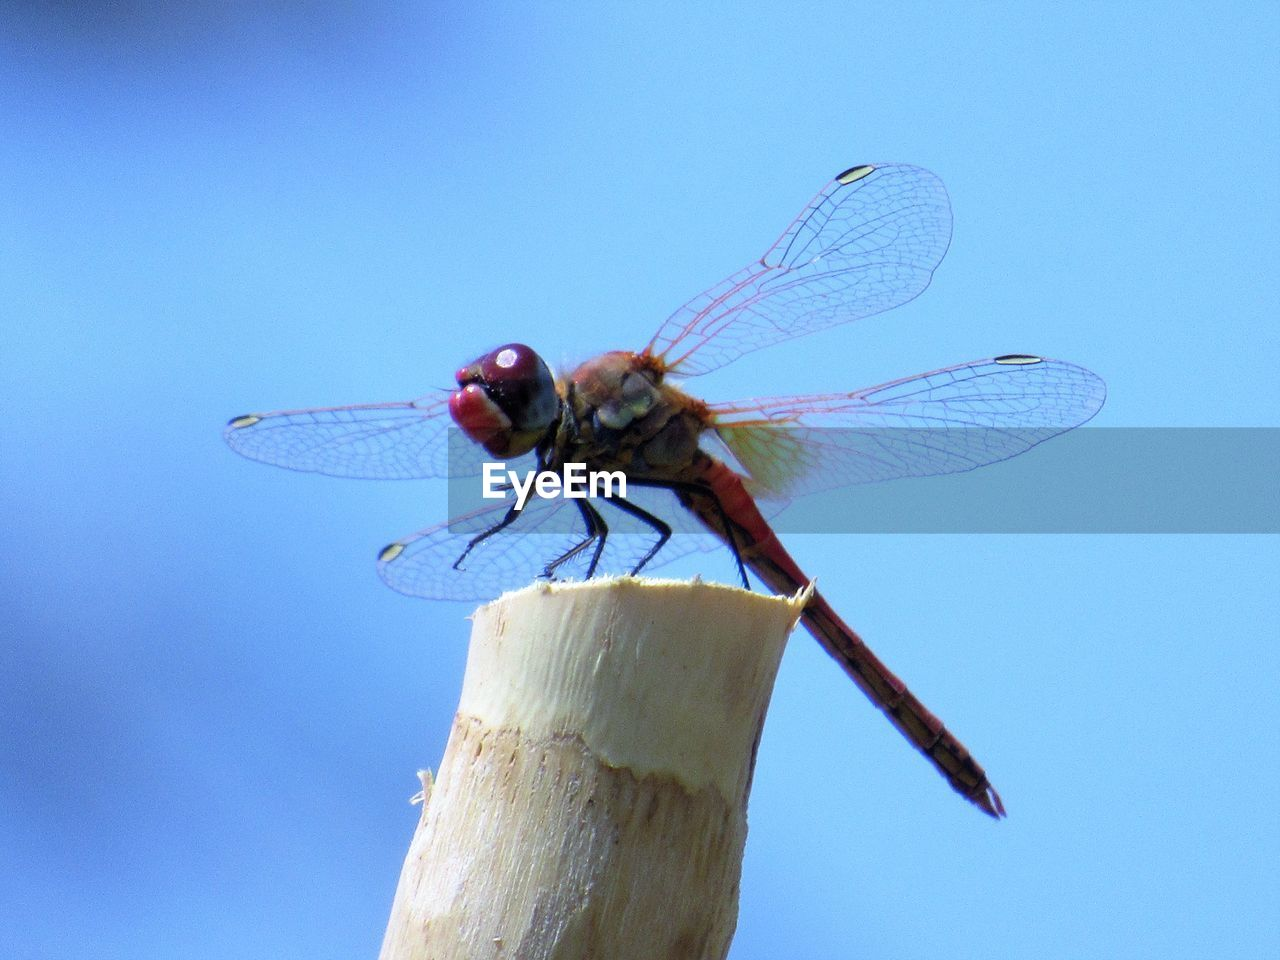 invertebrate, insect, animal wing, animal wildlife, animal themes, animal, animals in the wild, one animal, blue, dragonfly, nature, close-up, sky, no people, day, outdoors, plant, focus on foreground, clear sky, sunlight, blue background